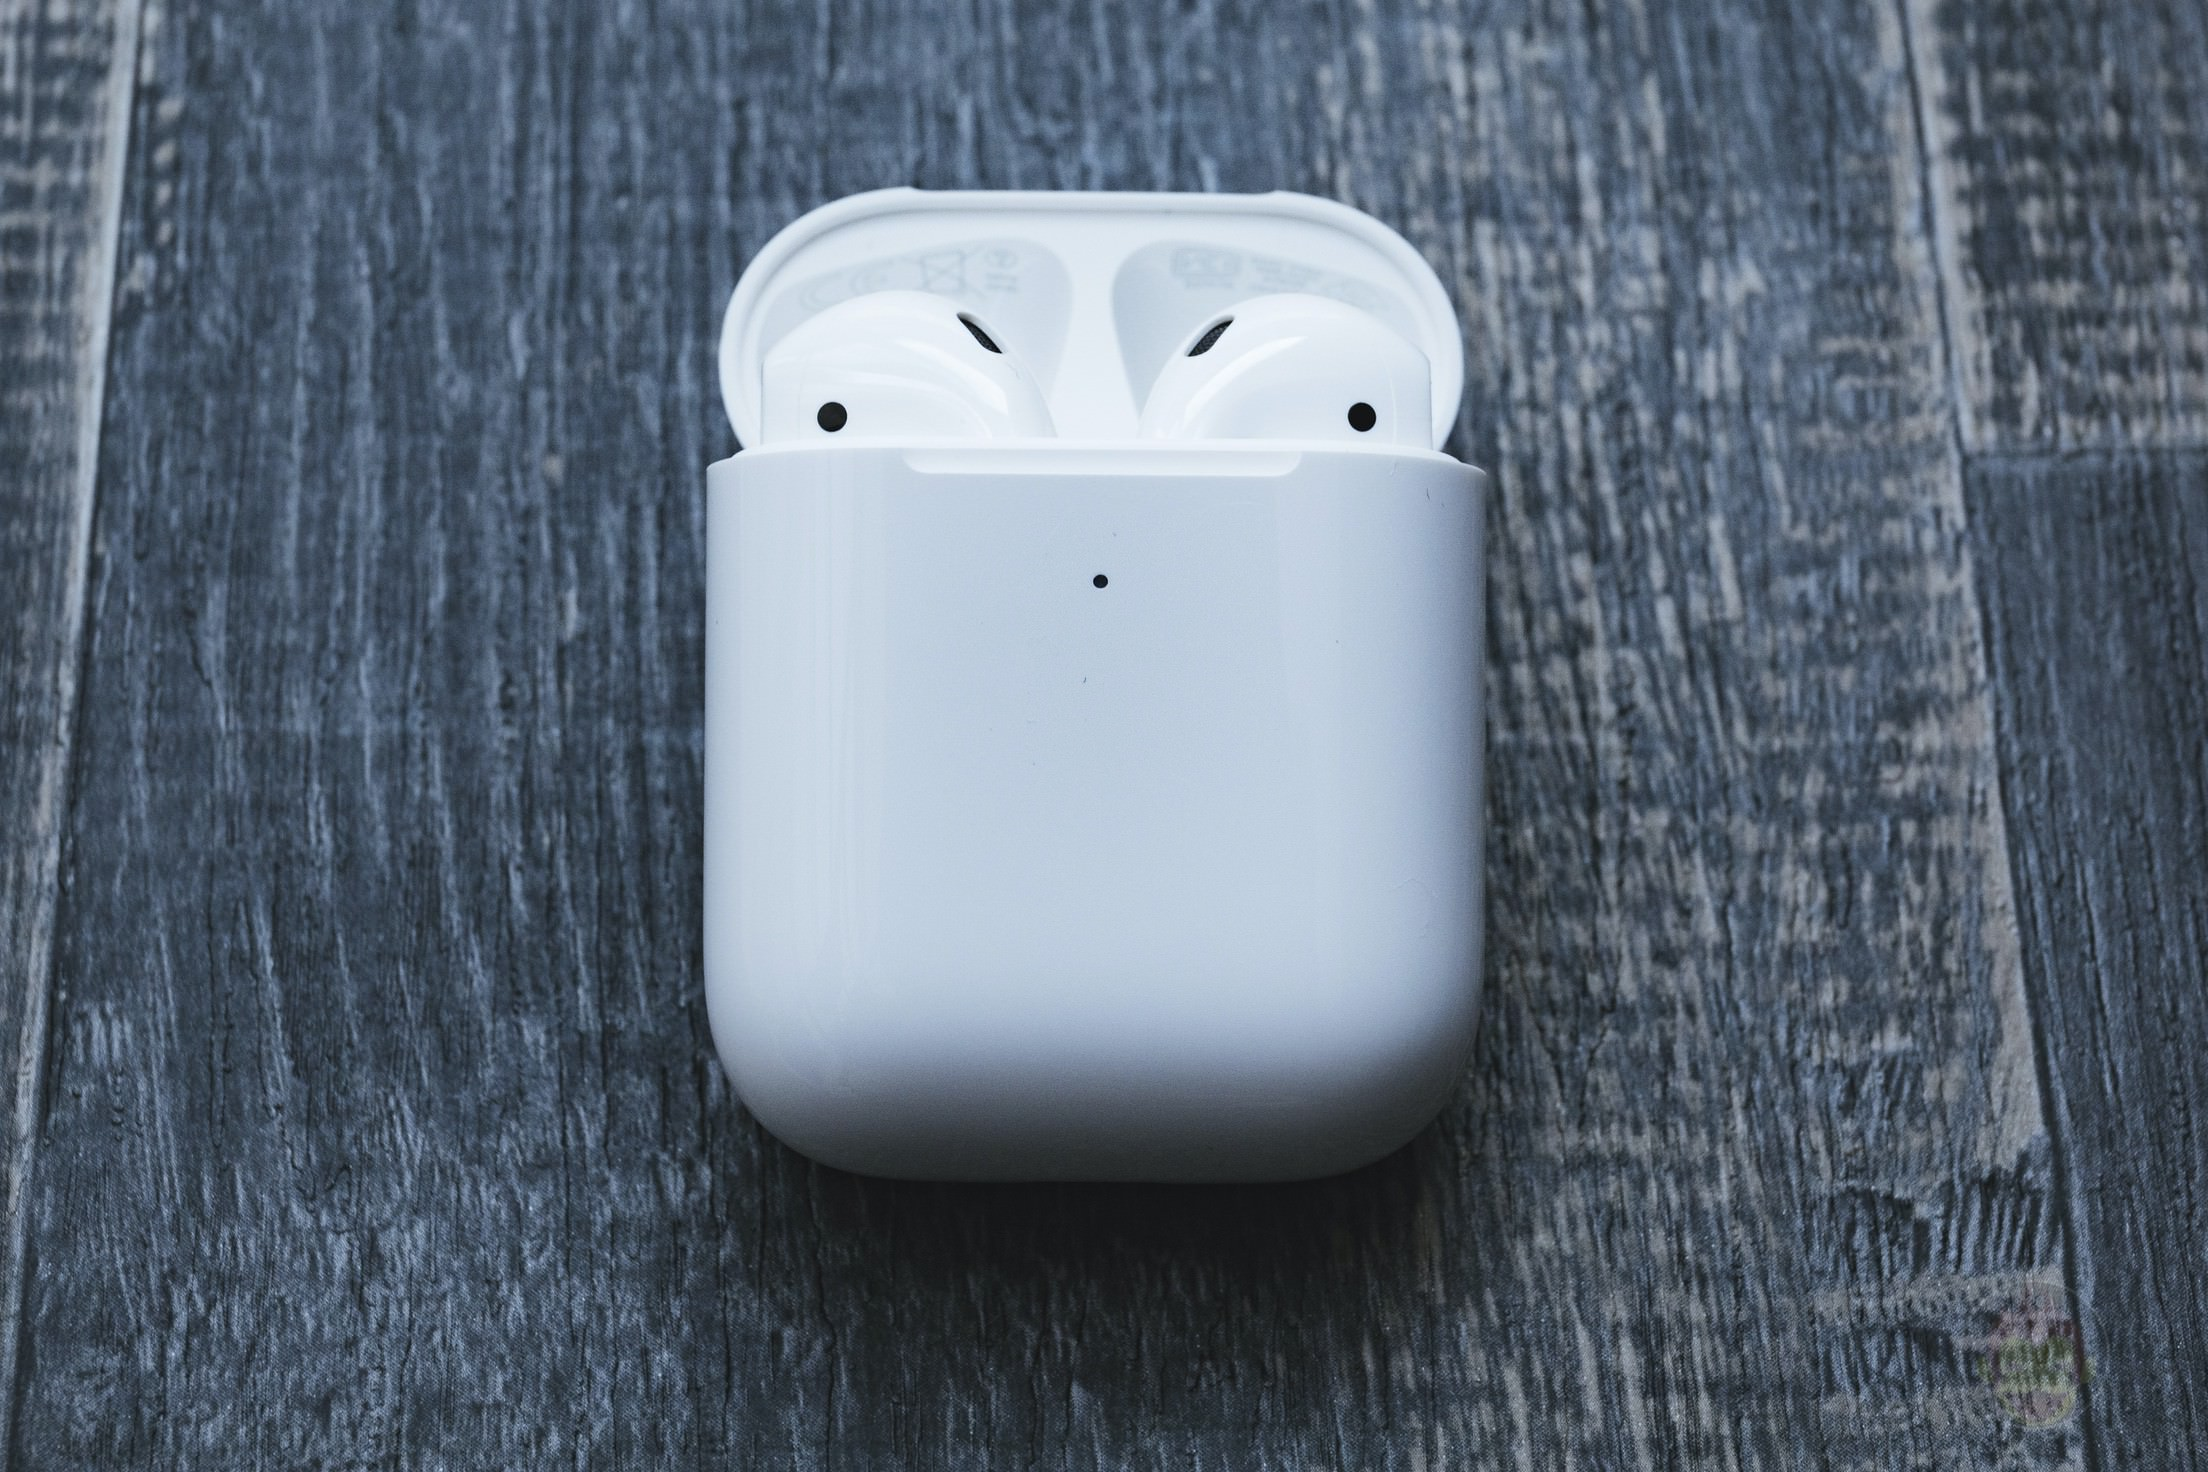 AirPods-2nd-Generation-2019-Review-08.jpg